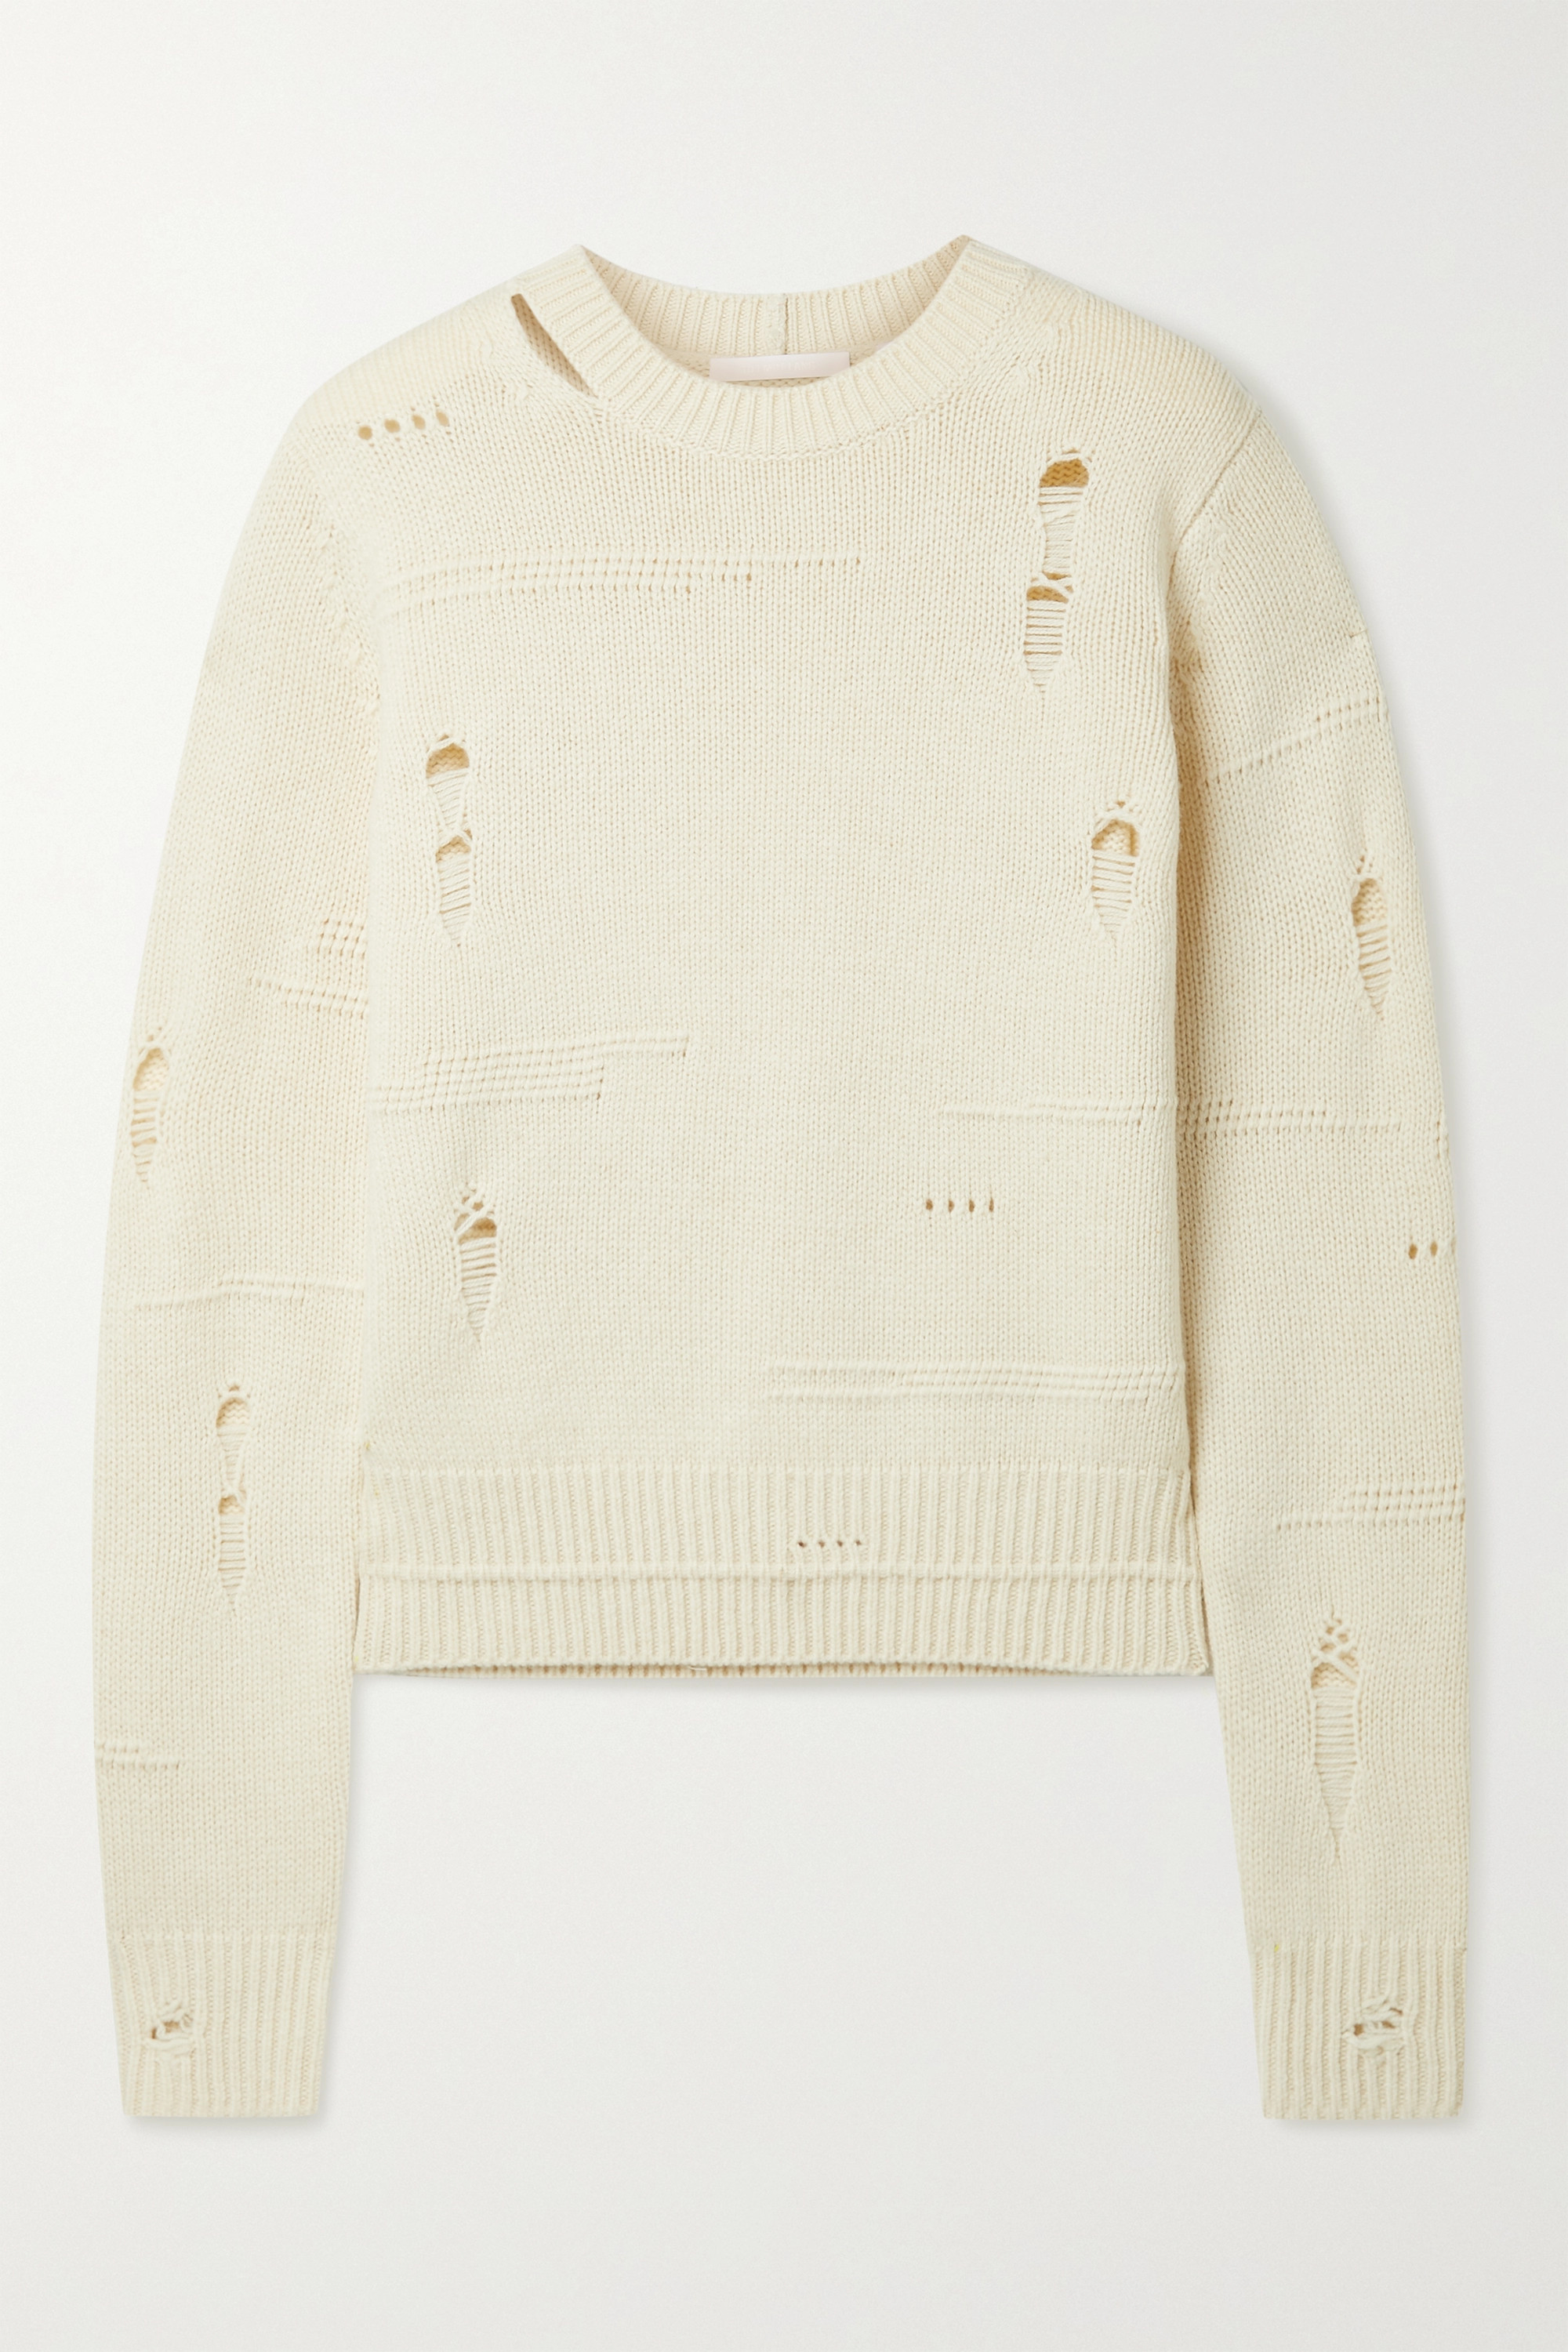 Helmut Lang Distressed wool, yak and cashmere-blend sweater